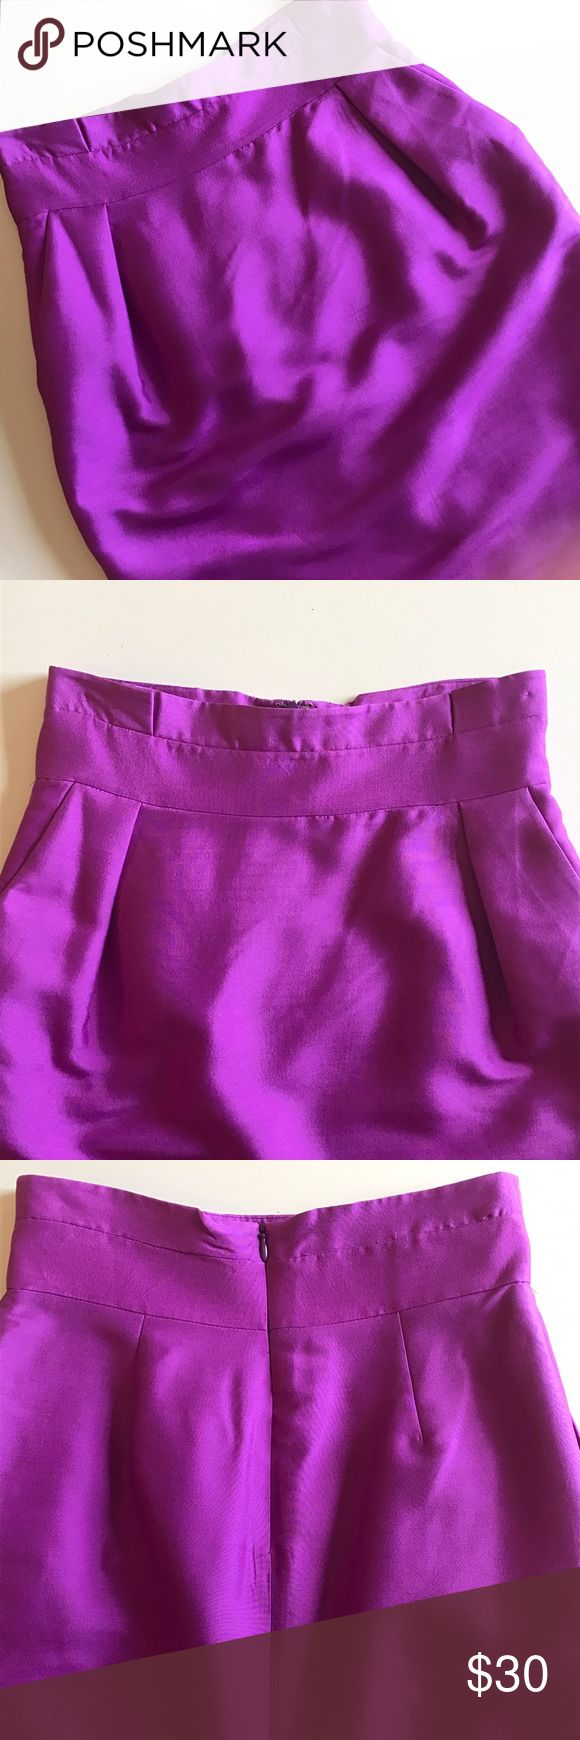 Reiss Purple Skirt Gently worn. Labeled size 4 but runs small. Fits like a 2. No trades, no pp. Reiss Skirts Pencil